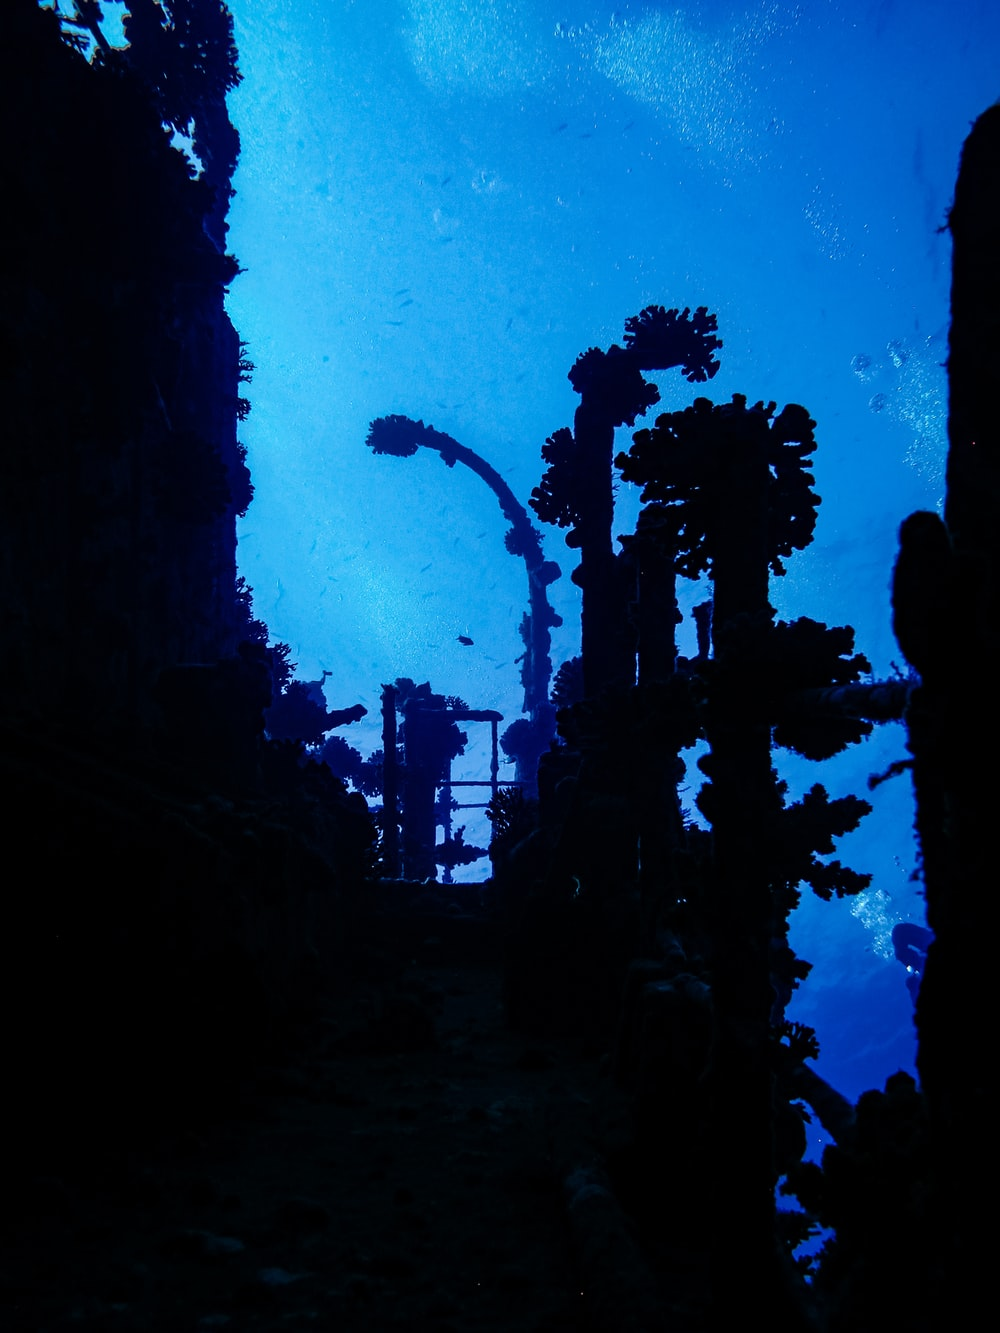 silhouette of person standing on rock formation during night time